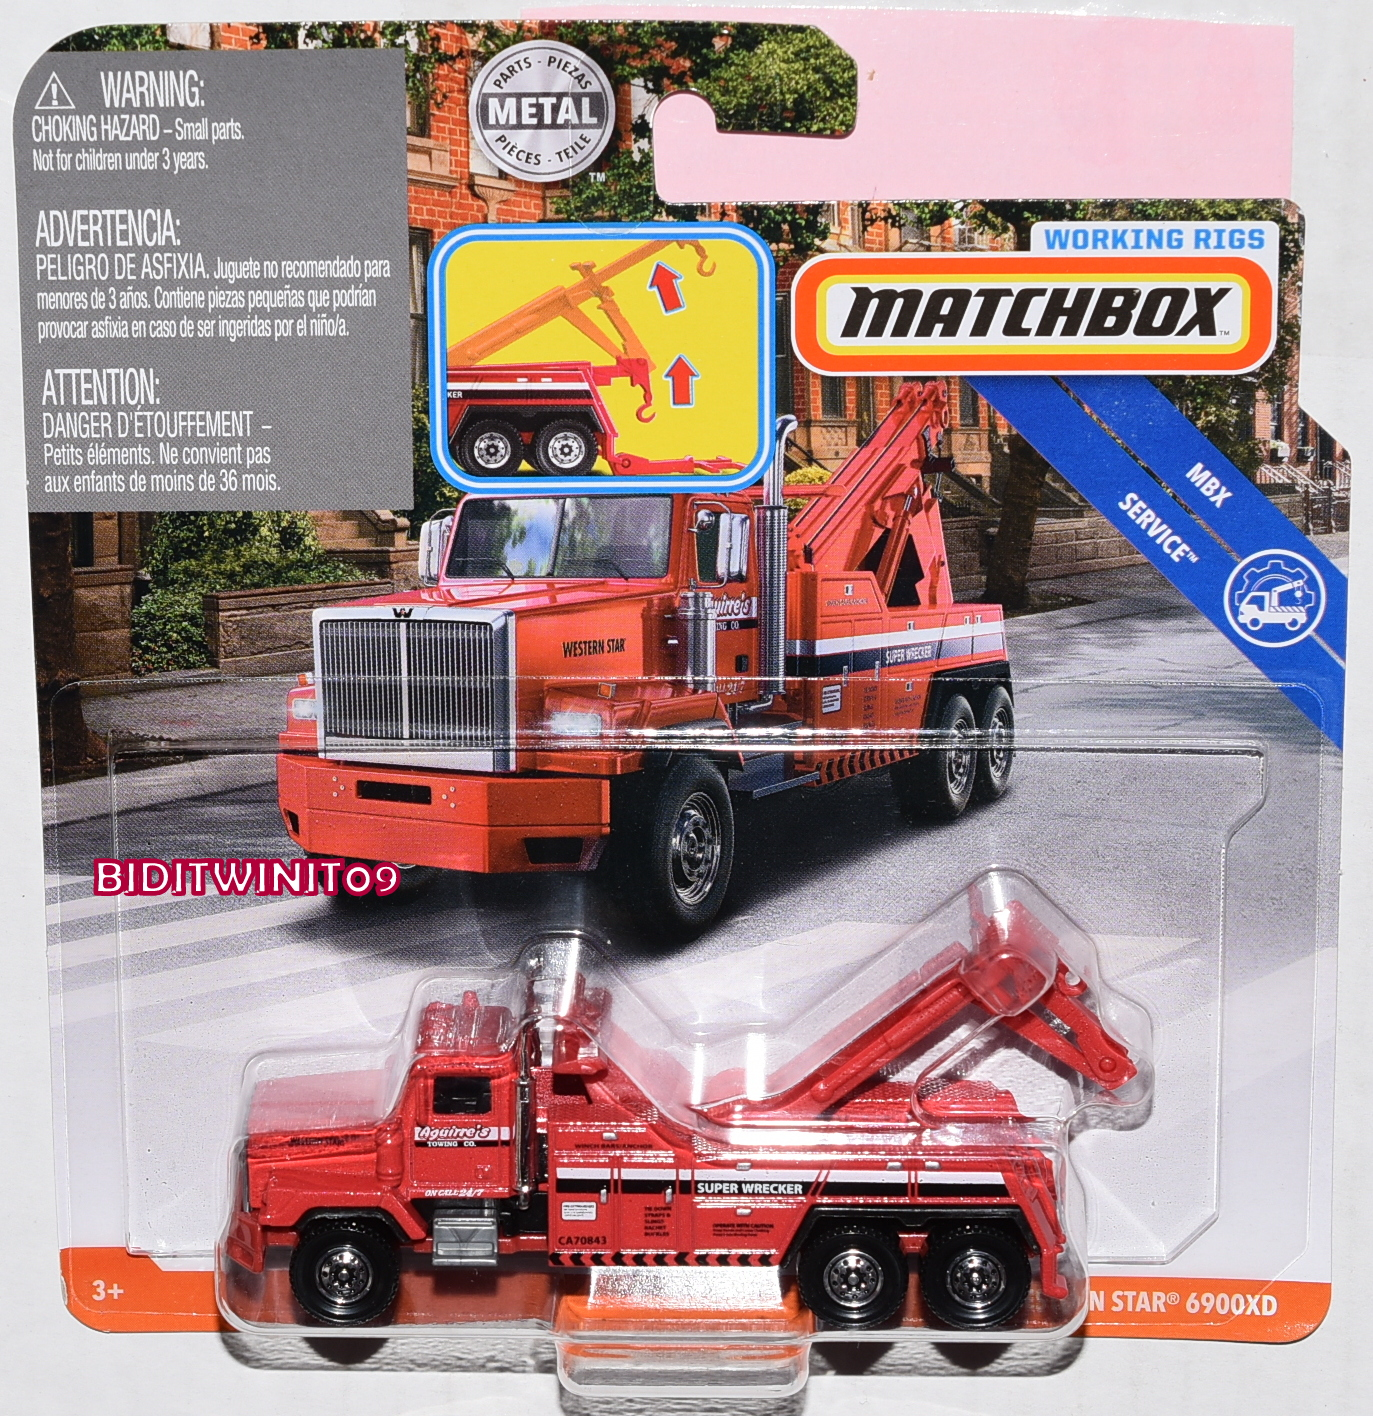 MATCHBOX 2019 WORKING RIGS MBX SERVICE WESTERN STAR 6900XD RED